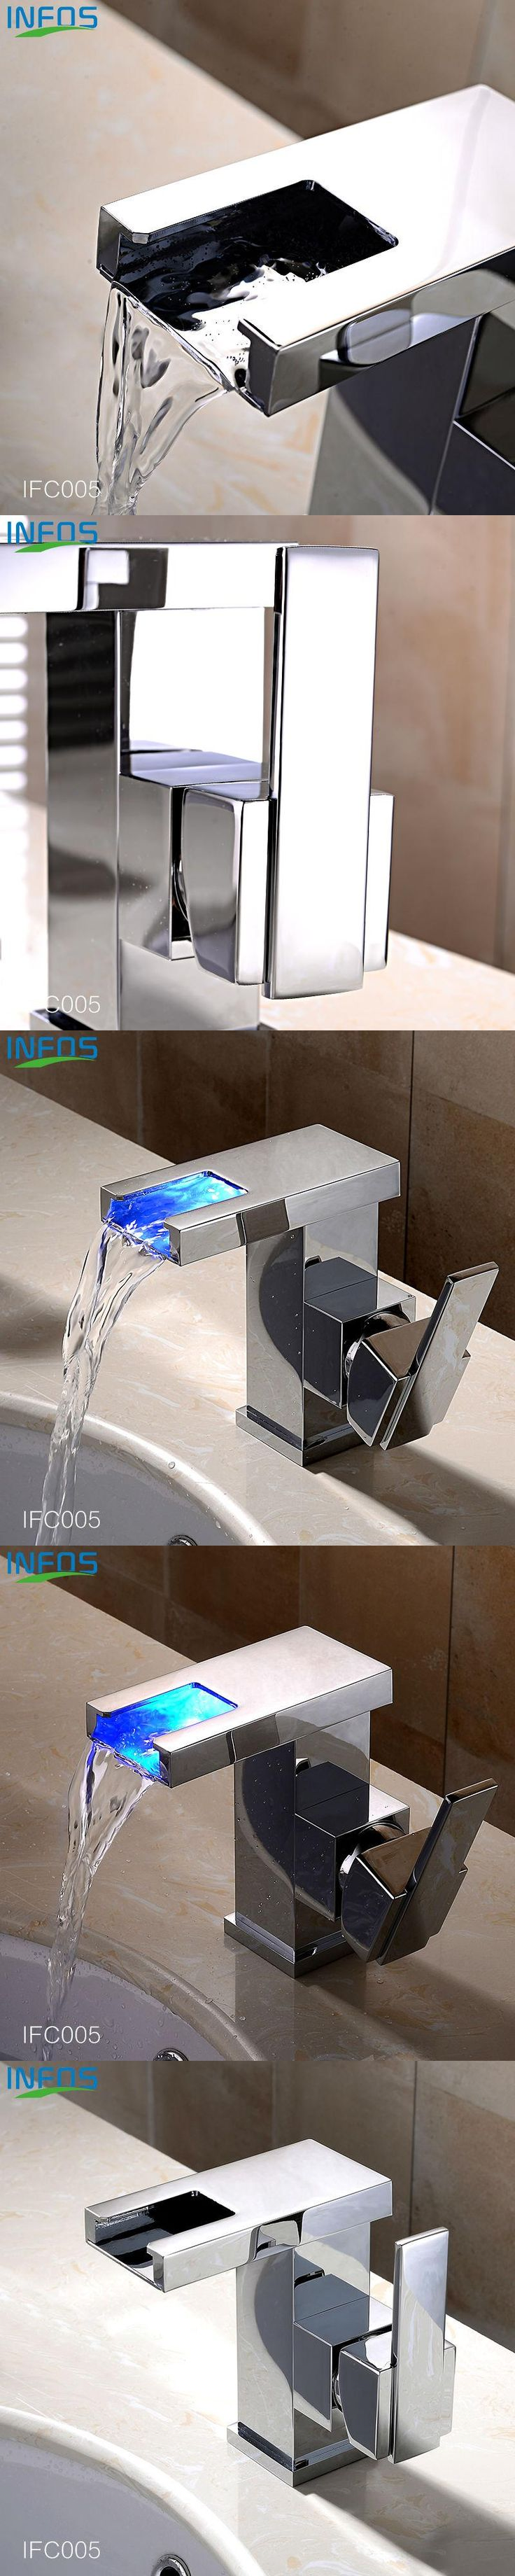 INFOS Bathroom LED Waterfall Water Tap Basin Faucet Kitchen Sink Tap Brass Tap Torneira Banheiro Basin Mixer Water Faucet IFC005